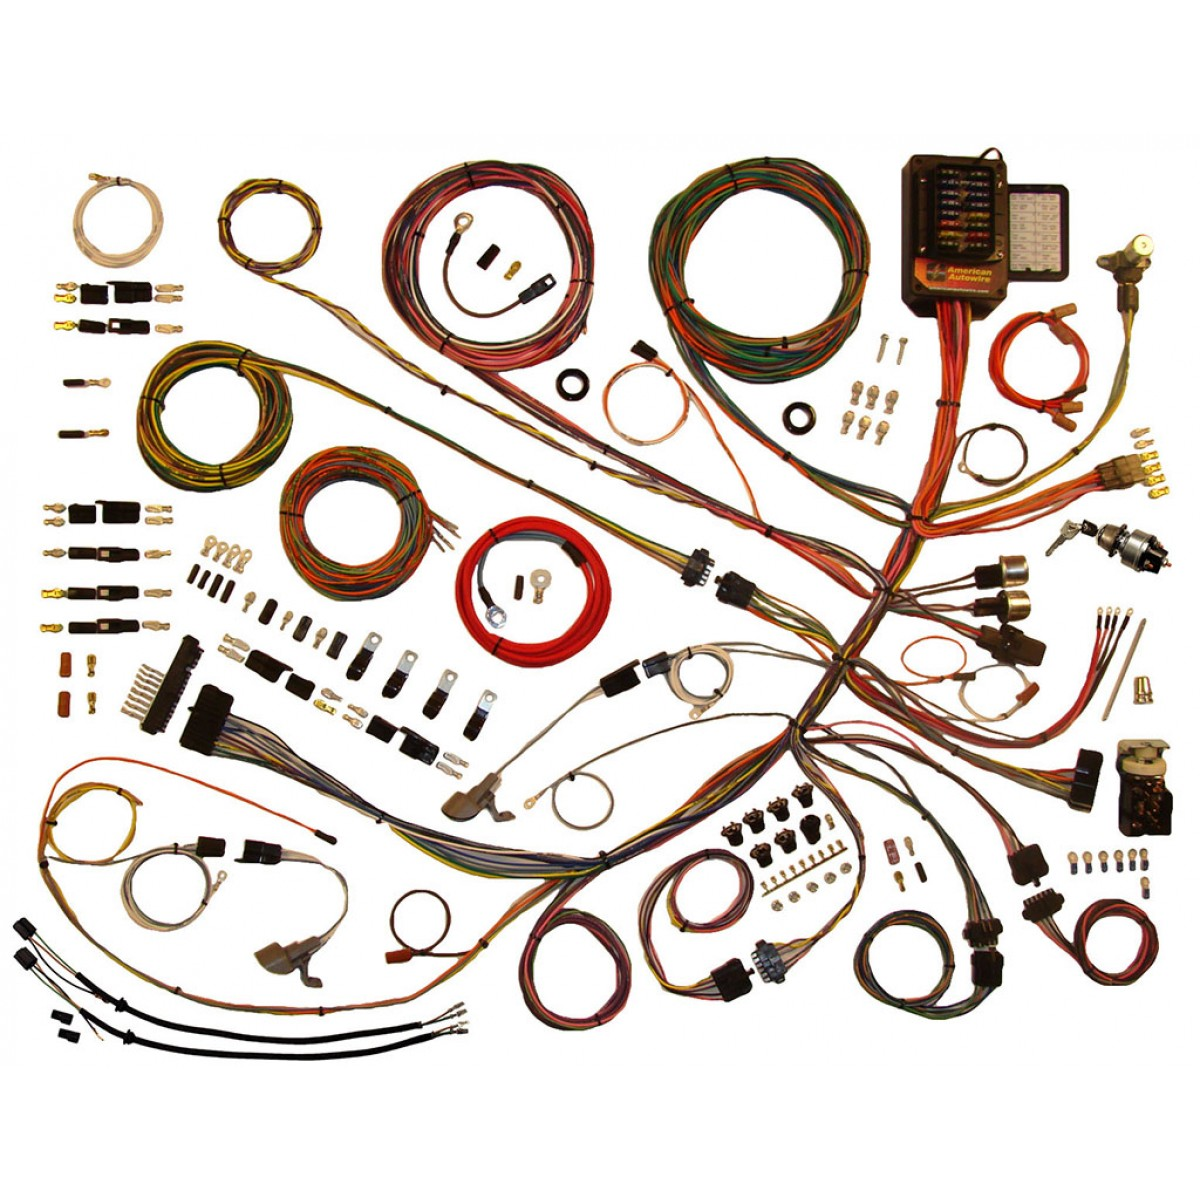 complete wiring harness kit 1953 1956 ford f100 part 510303 ford truck wiring harness f100 1953 1956 ford f100 wiring harness complete wiring harness kit ford wiring harness at webbmarketing.co